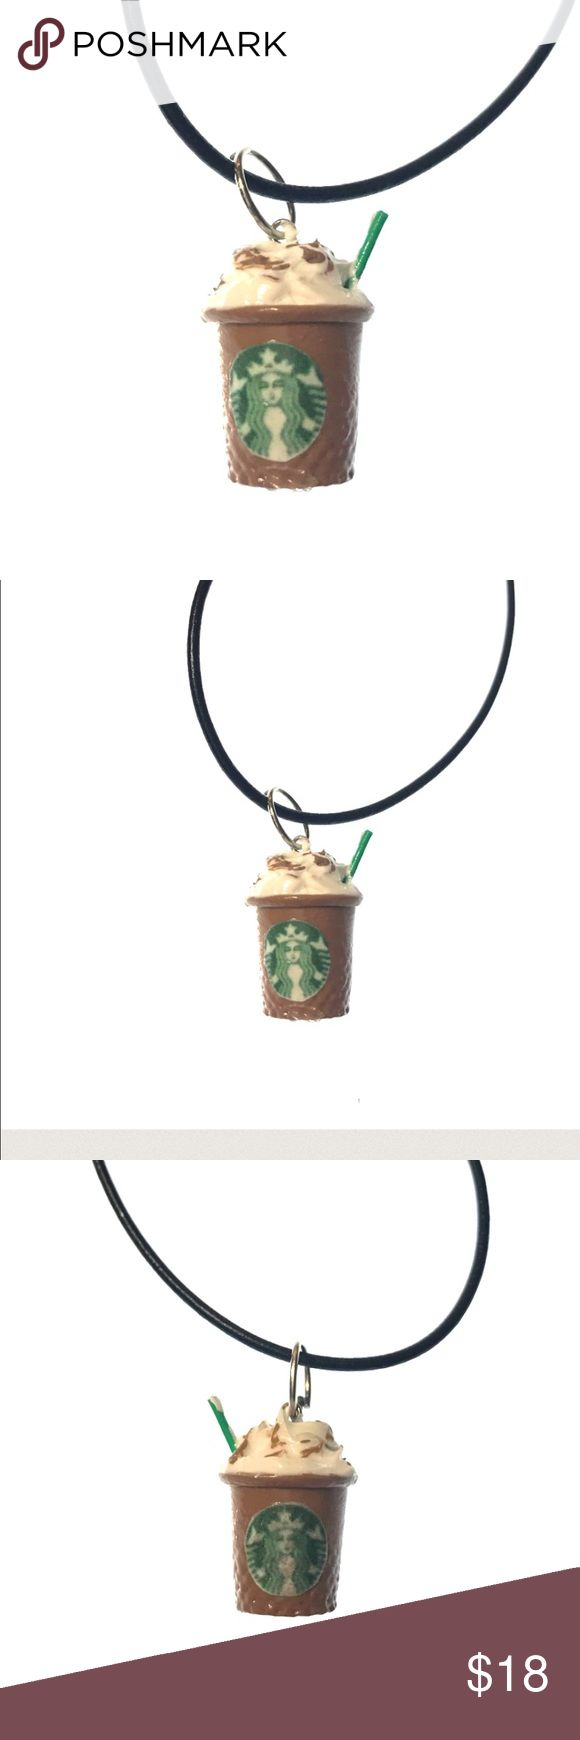 Starbucks handmade coffee necklace Starbucks handmade coffee necklace. Made by me. These take up to three days to finish making so it is properly dried before shipping. Handmade items may differ slightly from the picture as each item is hand crafted and not factory made. Made by me while drinking starbucks coffee lol. Bundle with other items in my closet to save even more. Jewelry Necklaces